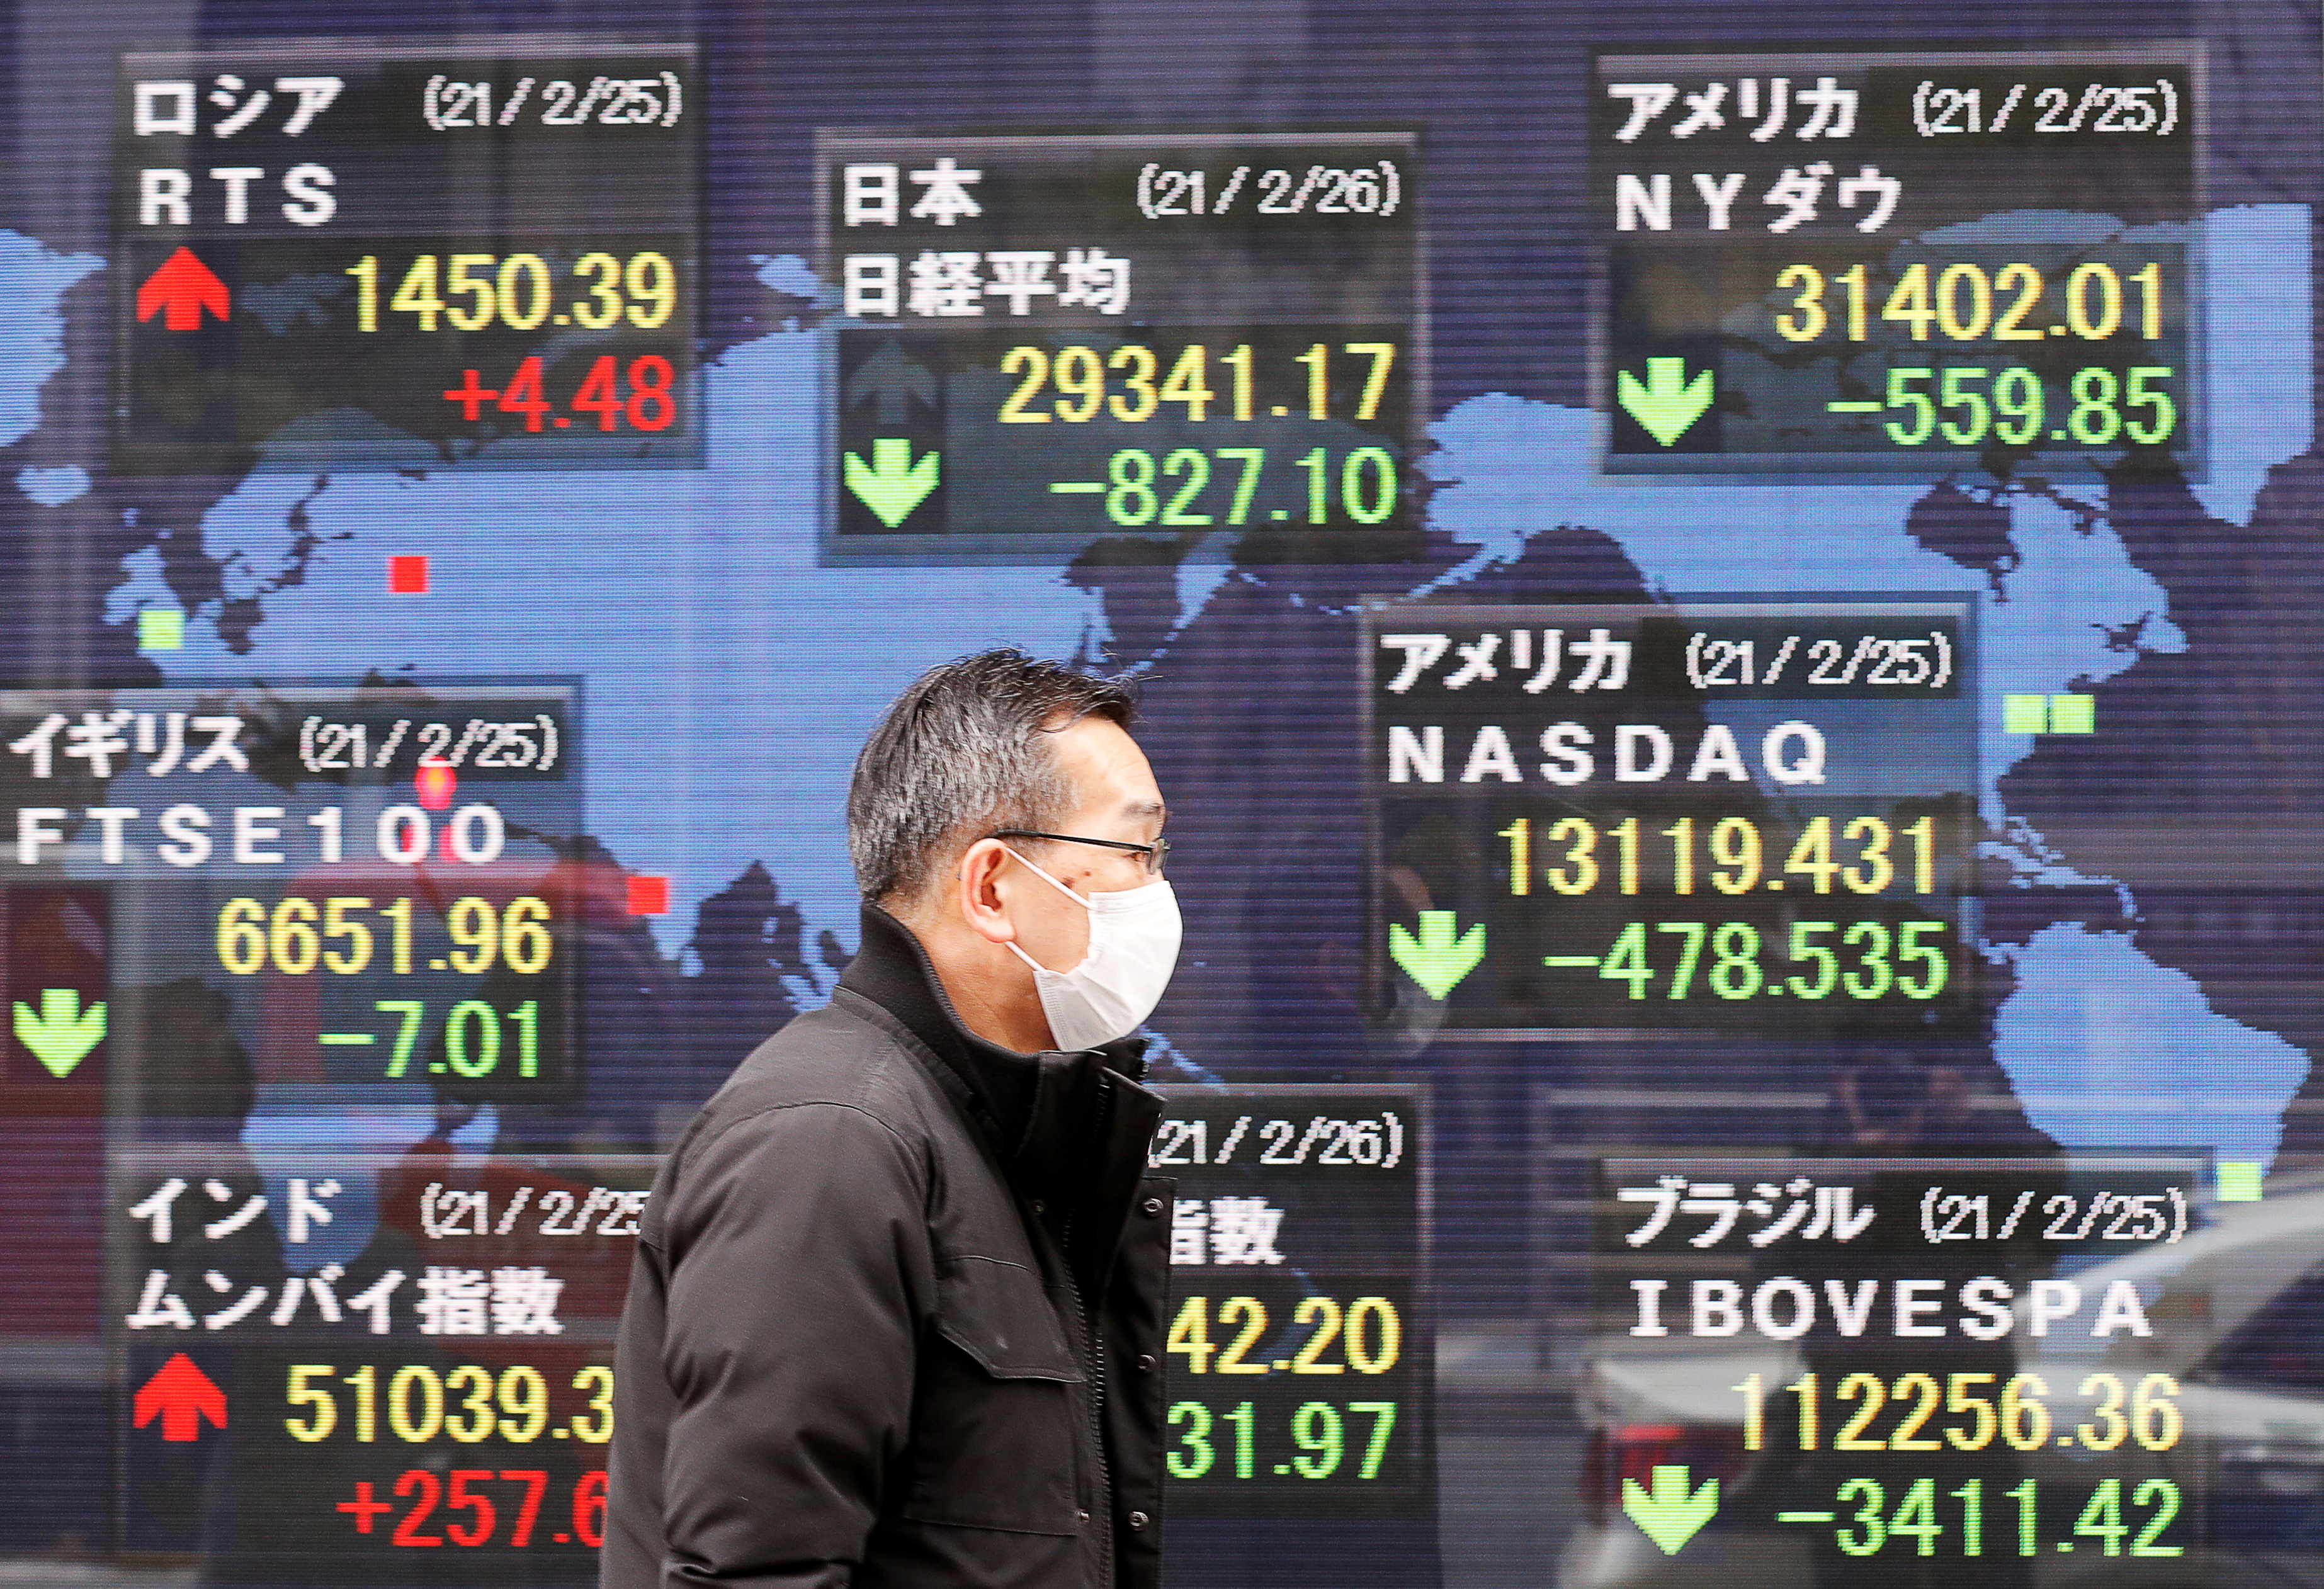 A man walks past a stock quotation board at a brokerage in Tokyo, Japan February 26, 2021. REUTERS/Kim Kyung-Hoon/File Photo